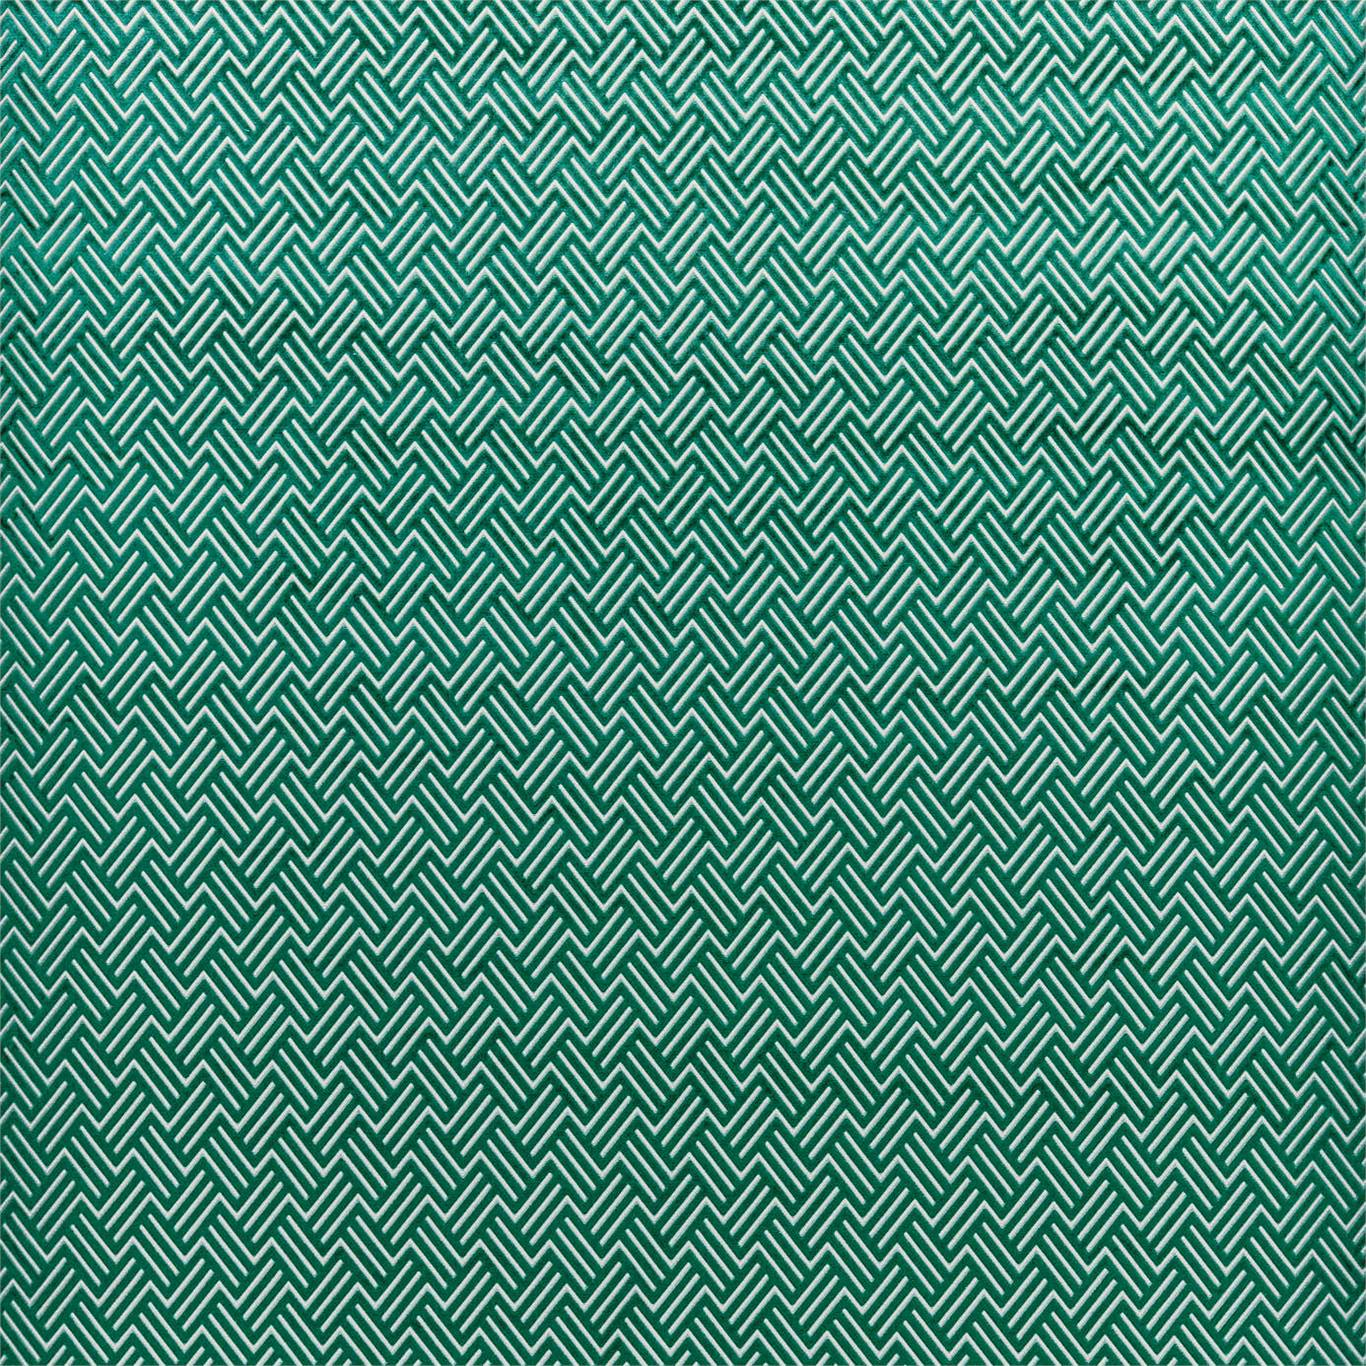 HMTC133490 Collection - Momentum 13 Fabric